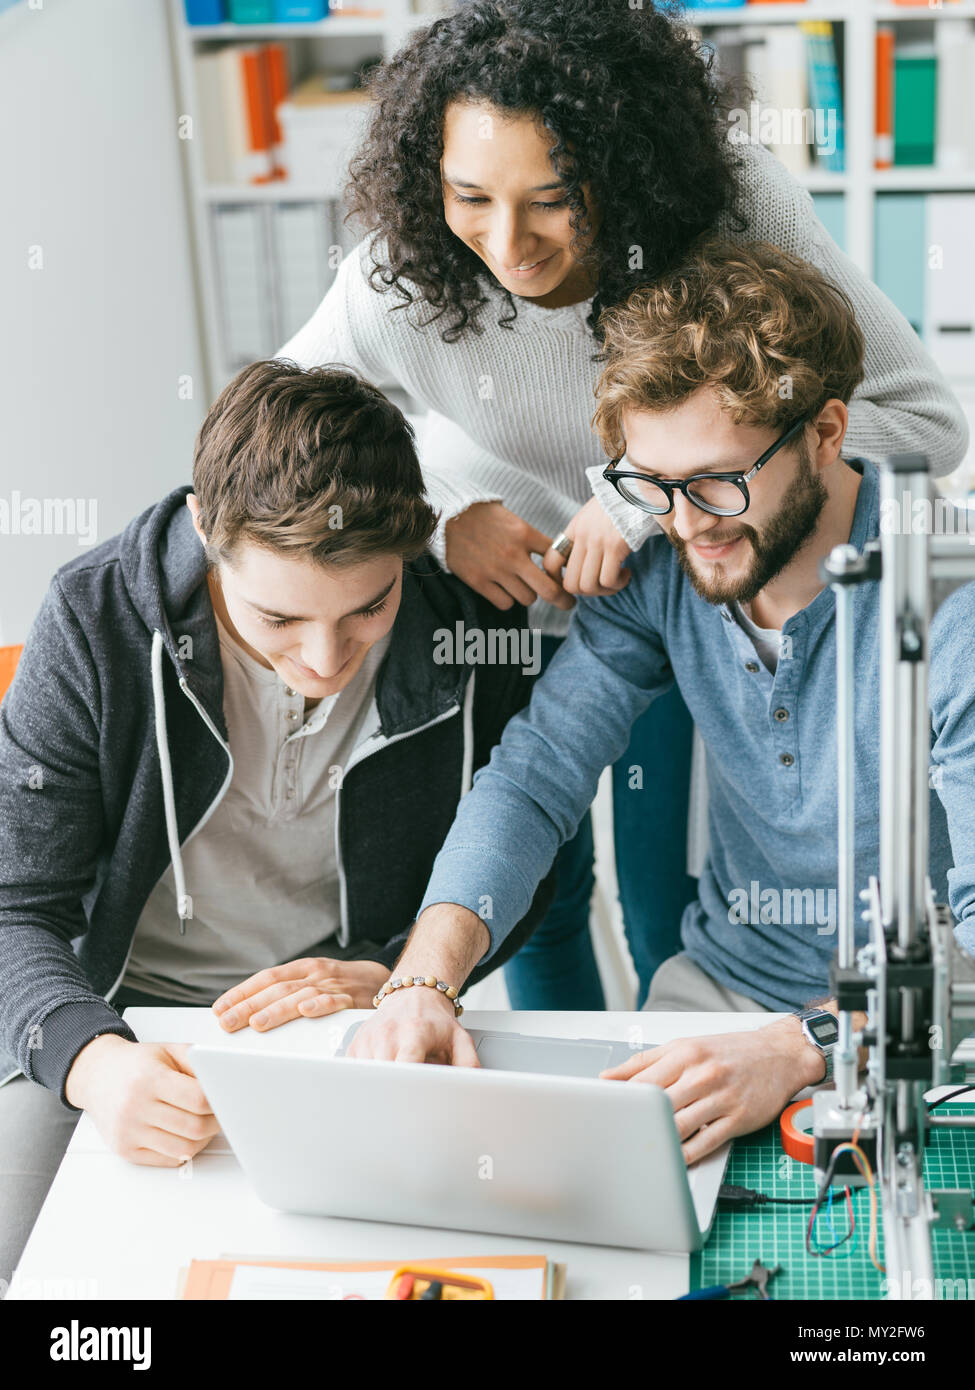 Group of engineering students using a 3D printer and a laptop in the lab, technology and learning concept - Stock Image